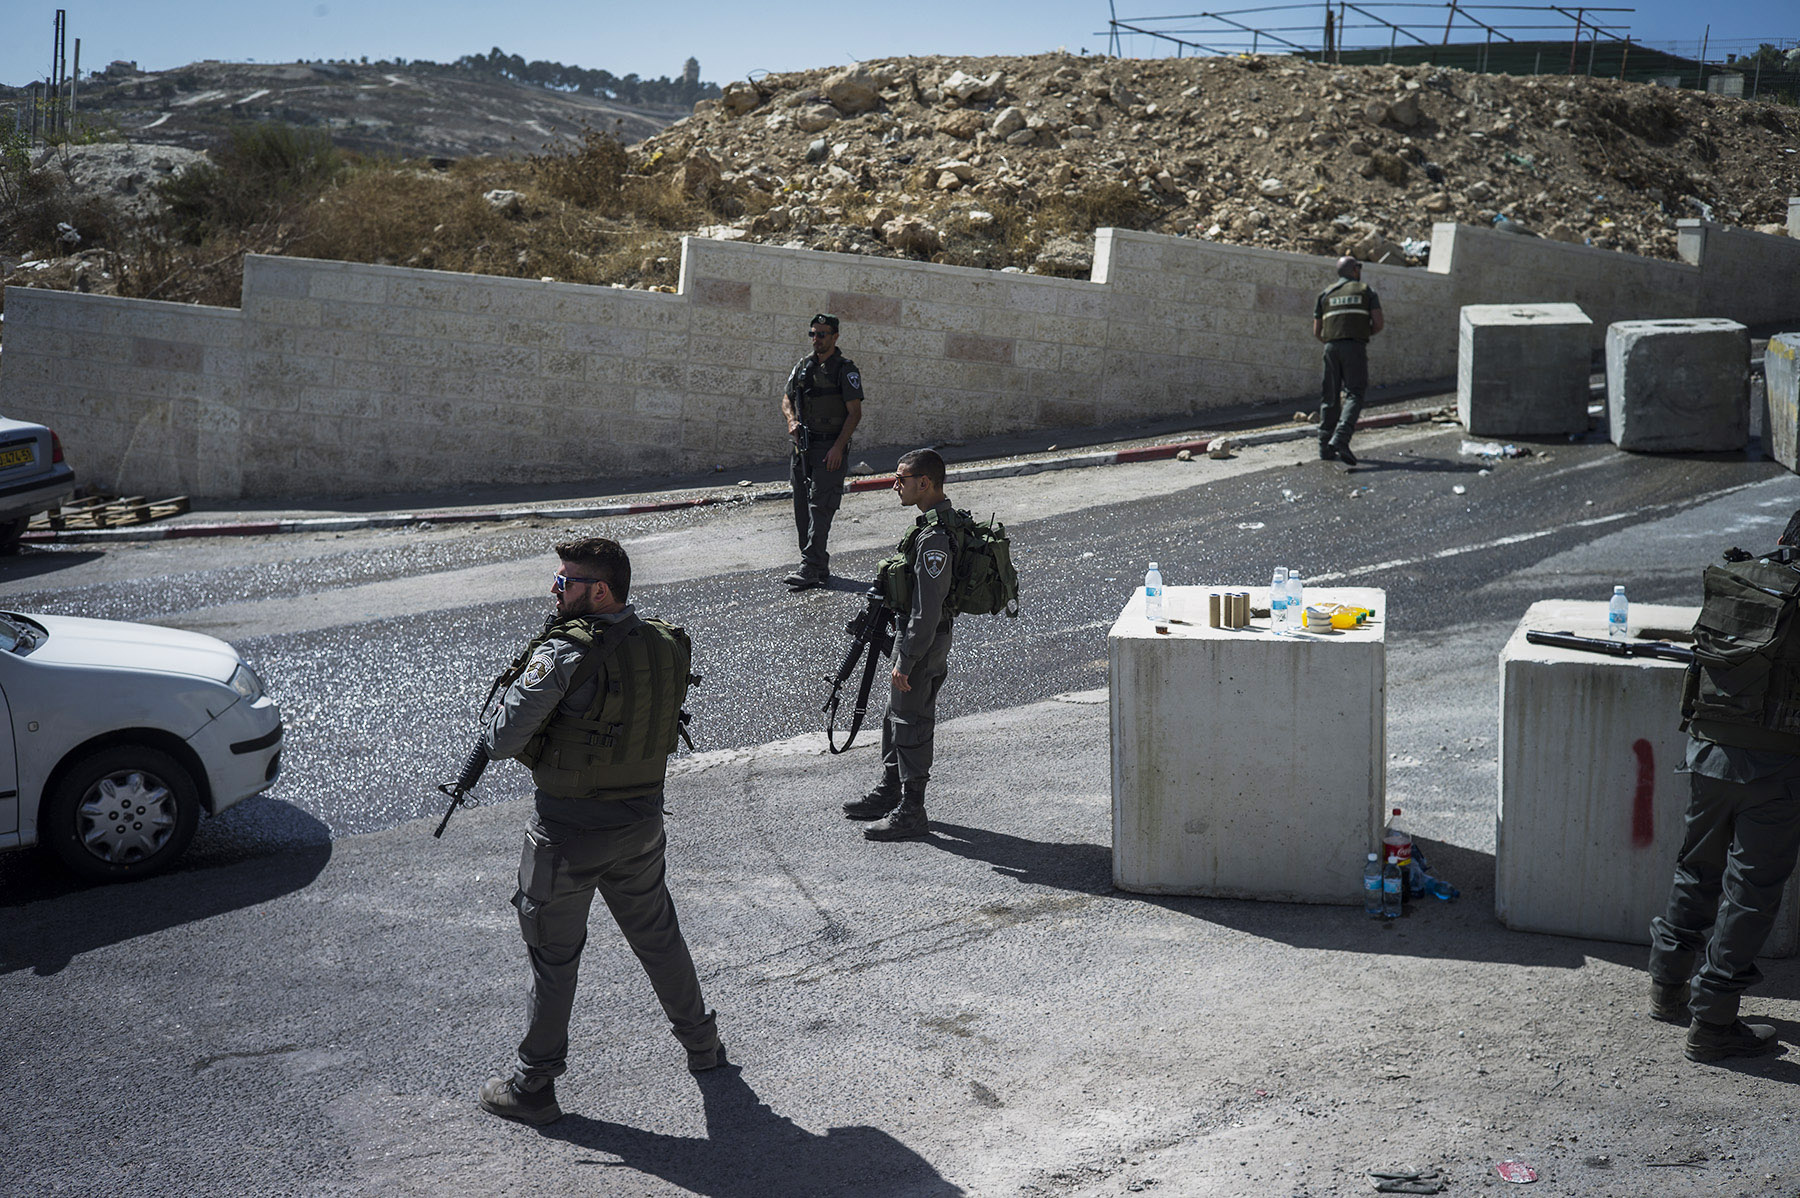 Israeli police and border police stop and check Palestinians going out of East Jerusalem neighborhoods, on Oct. 15, 2015.